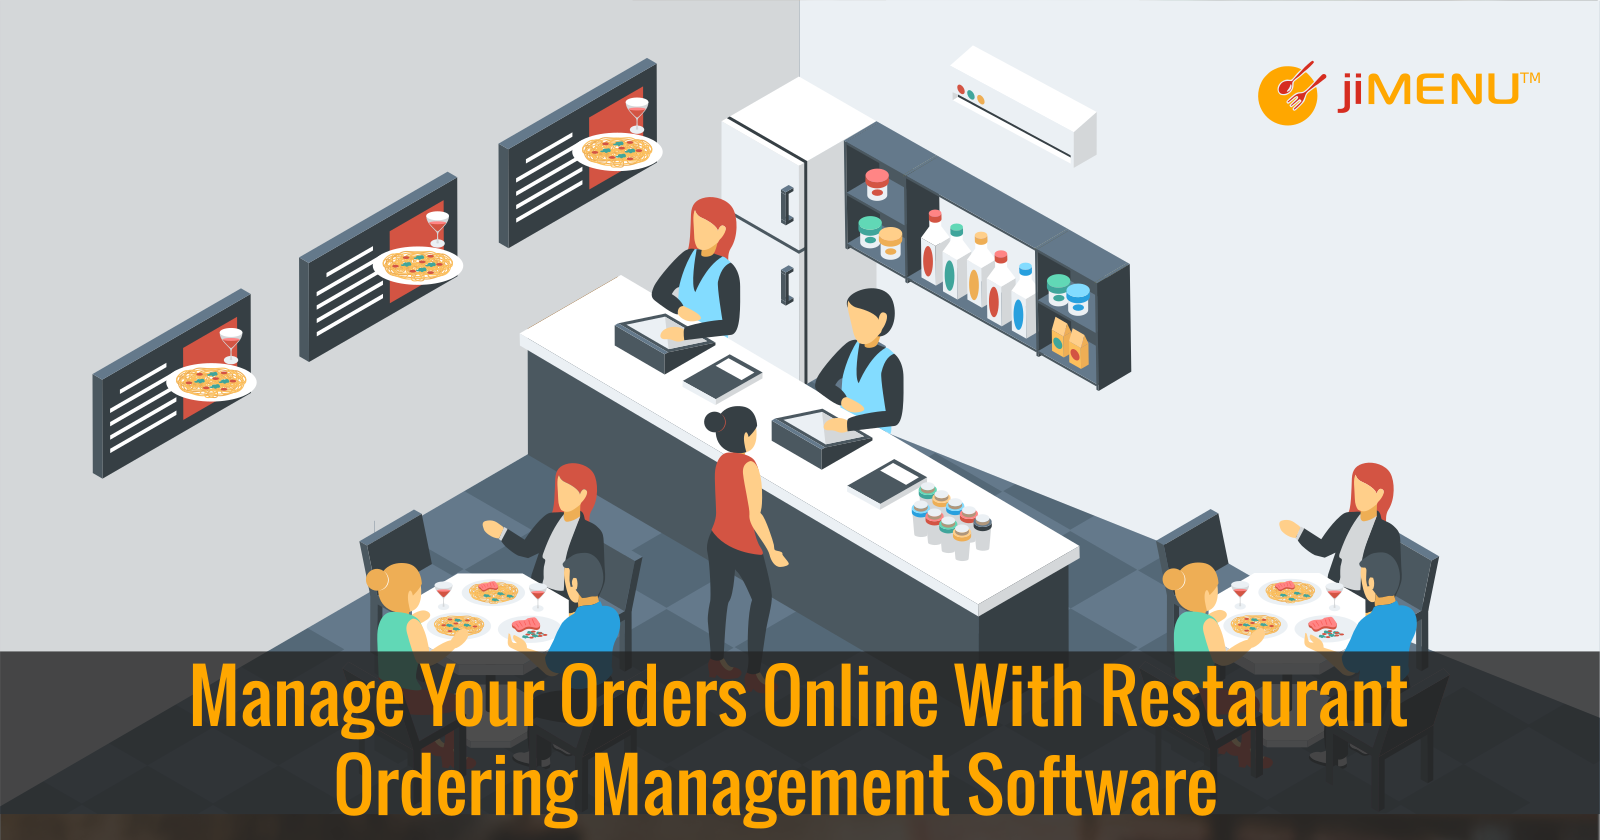 Manage Your Orders Online With Restaurant Ordering Management Software